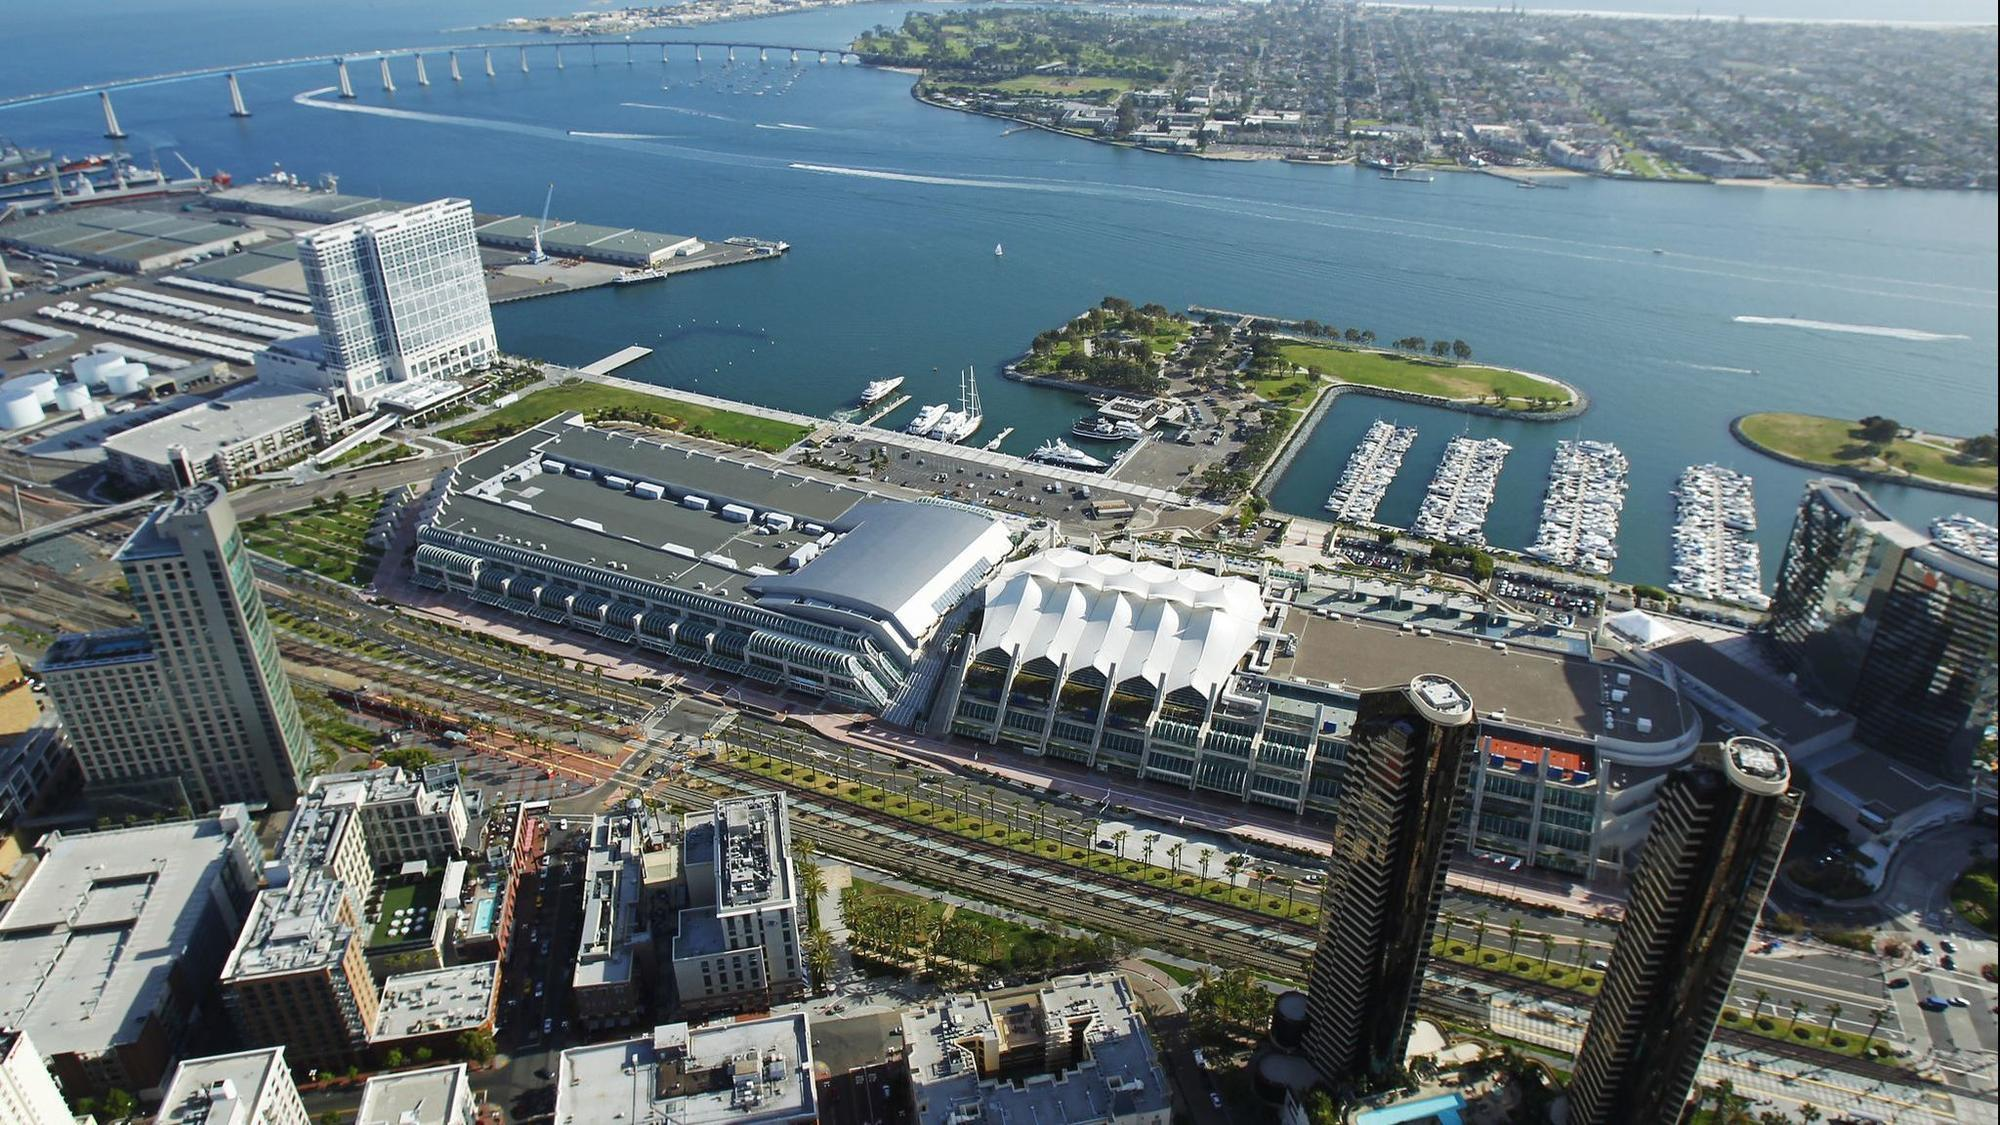 San Diego Convention Center aerial photo - image link to article